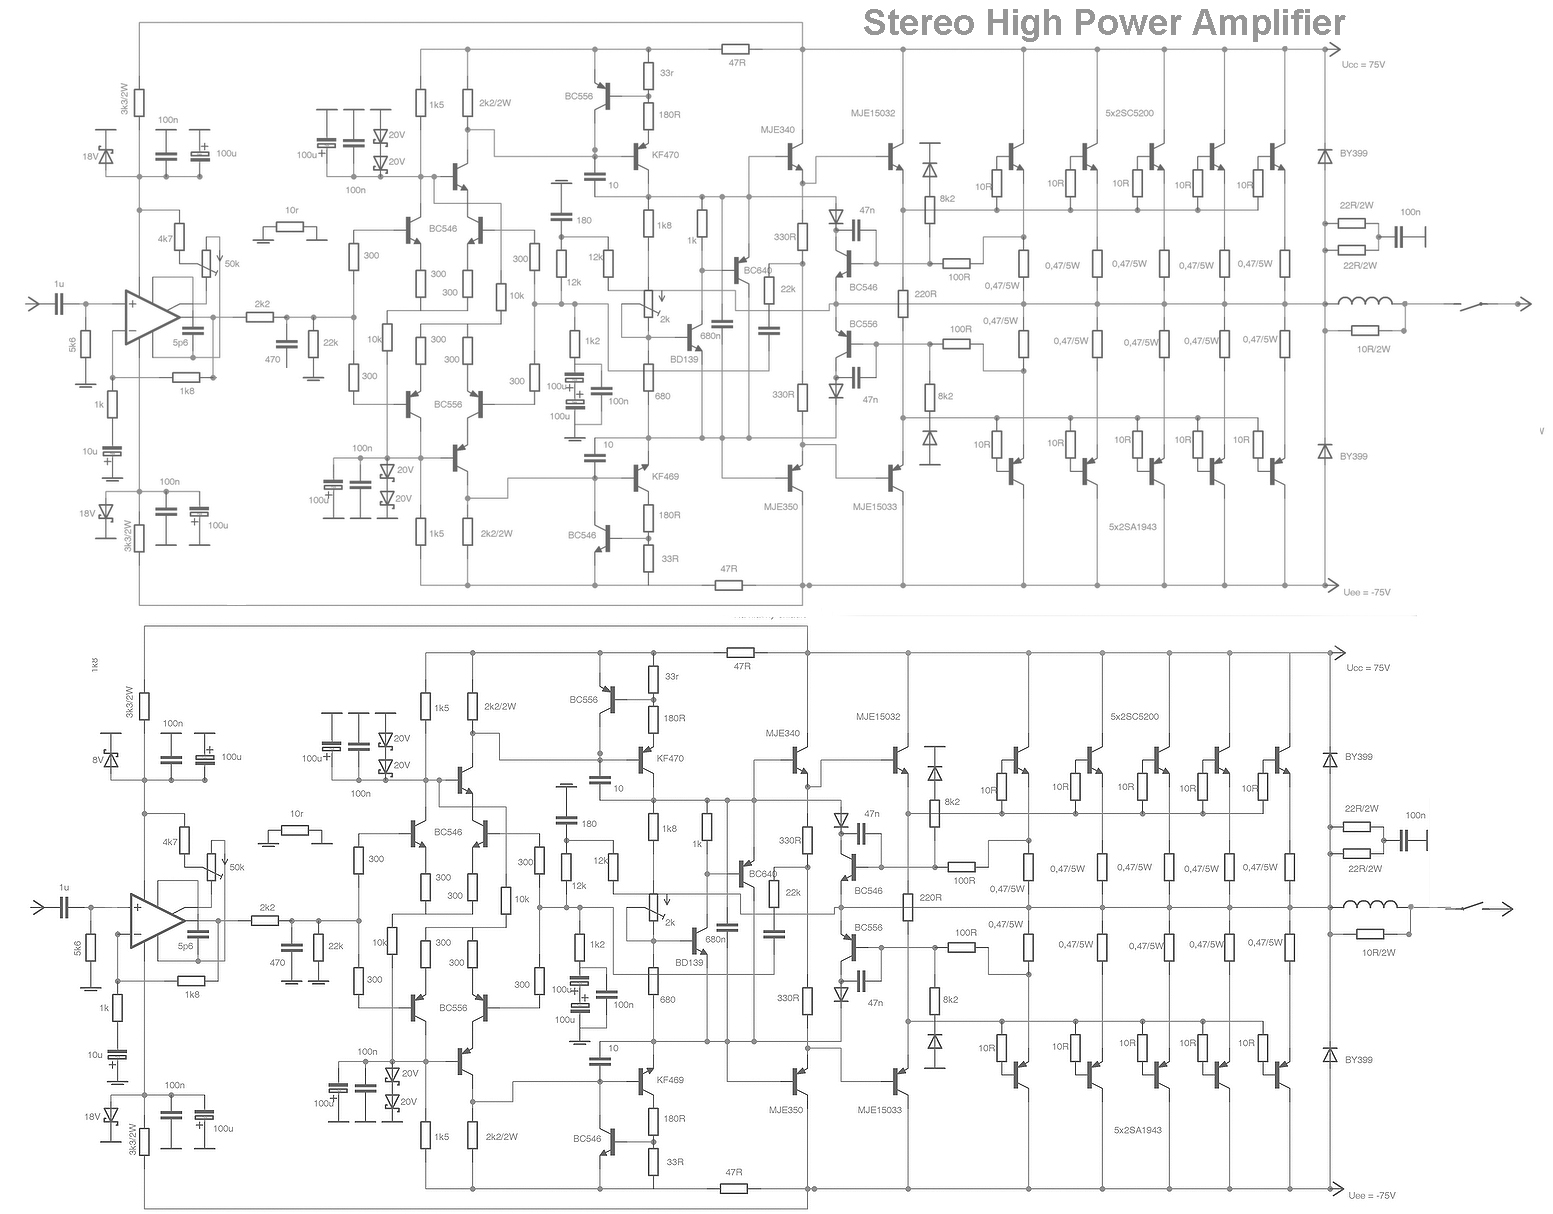 stereo high power audio amplifier ~ schematic diagram circuit on simple amplifier schematics